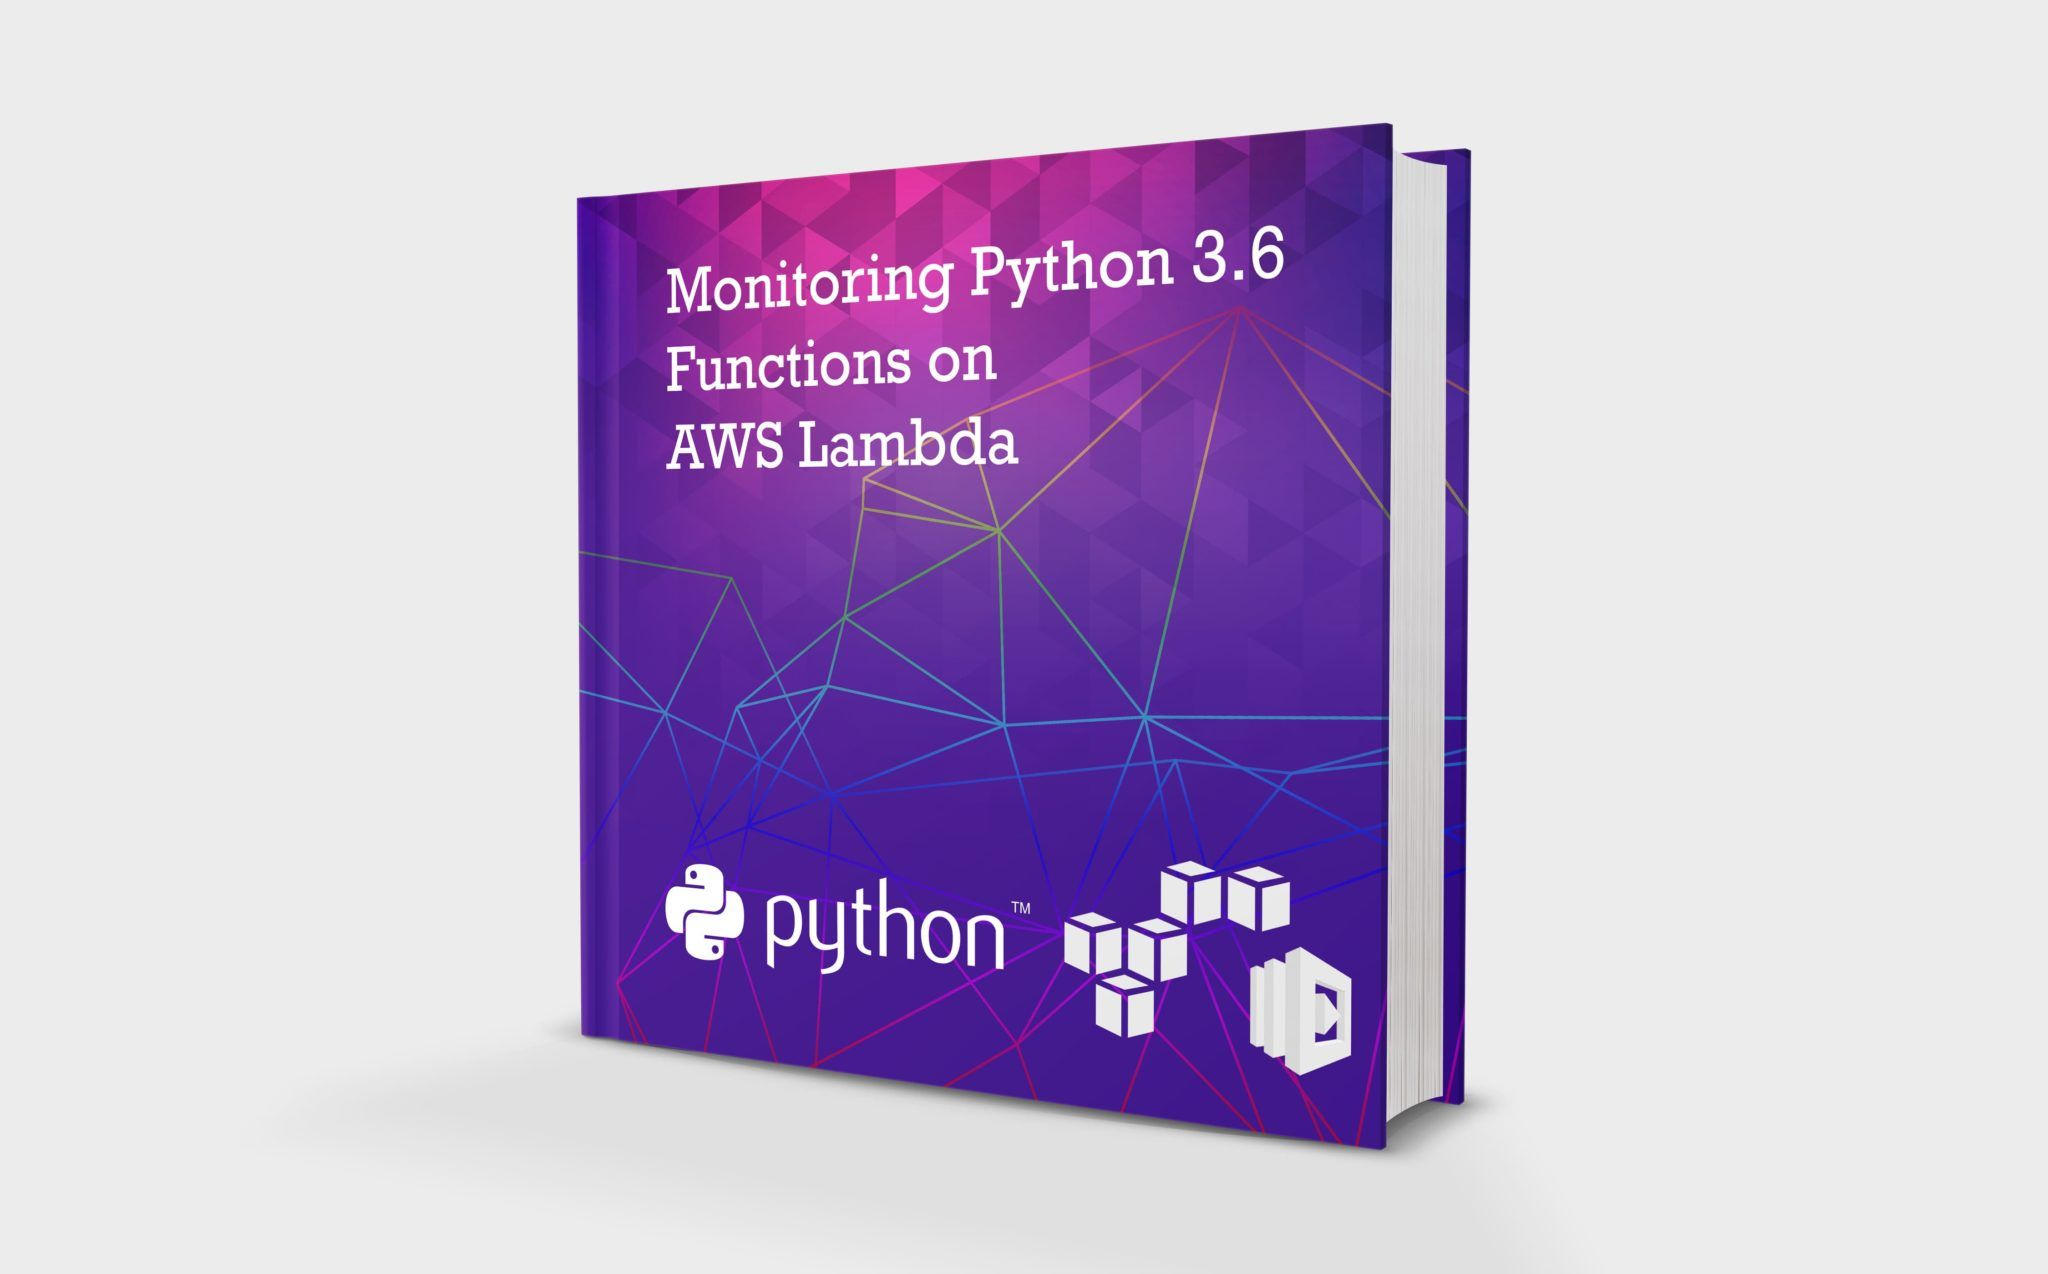 This Ebook gives information how to get in touch with AWS Lambda and